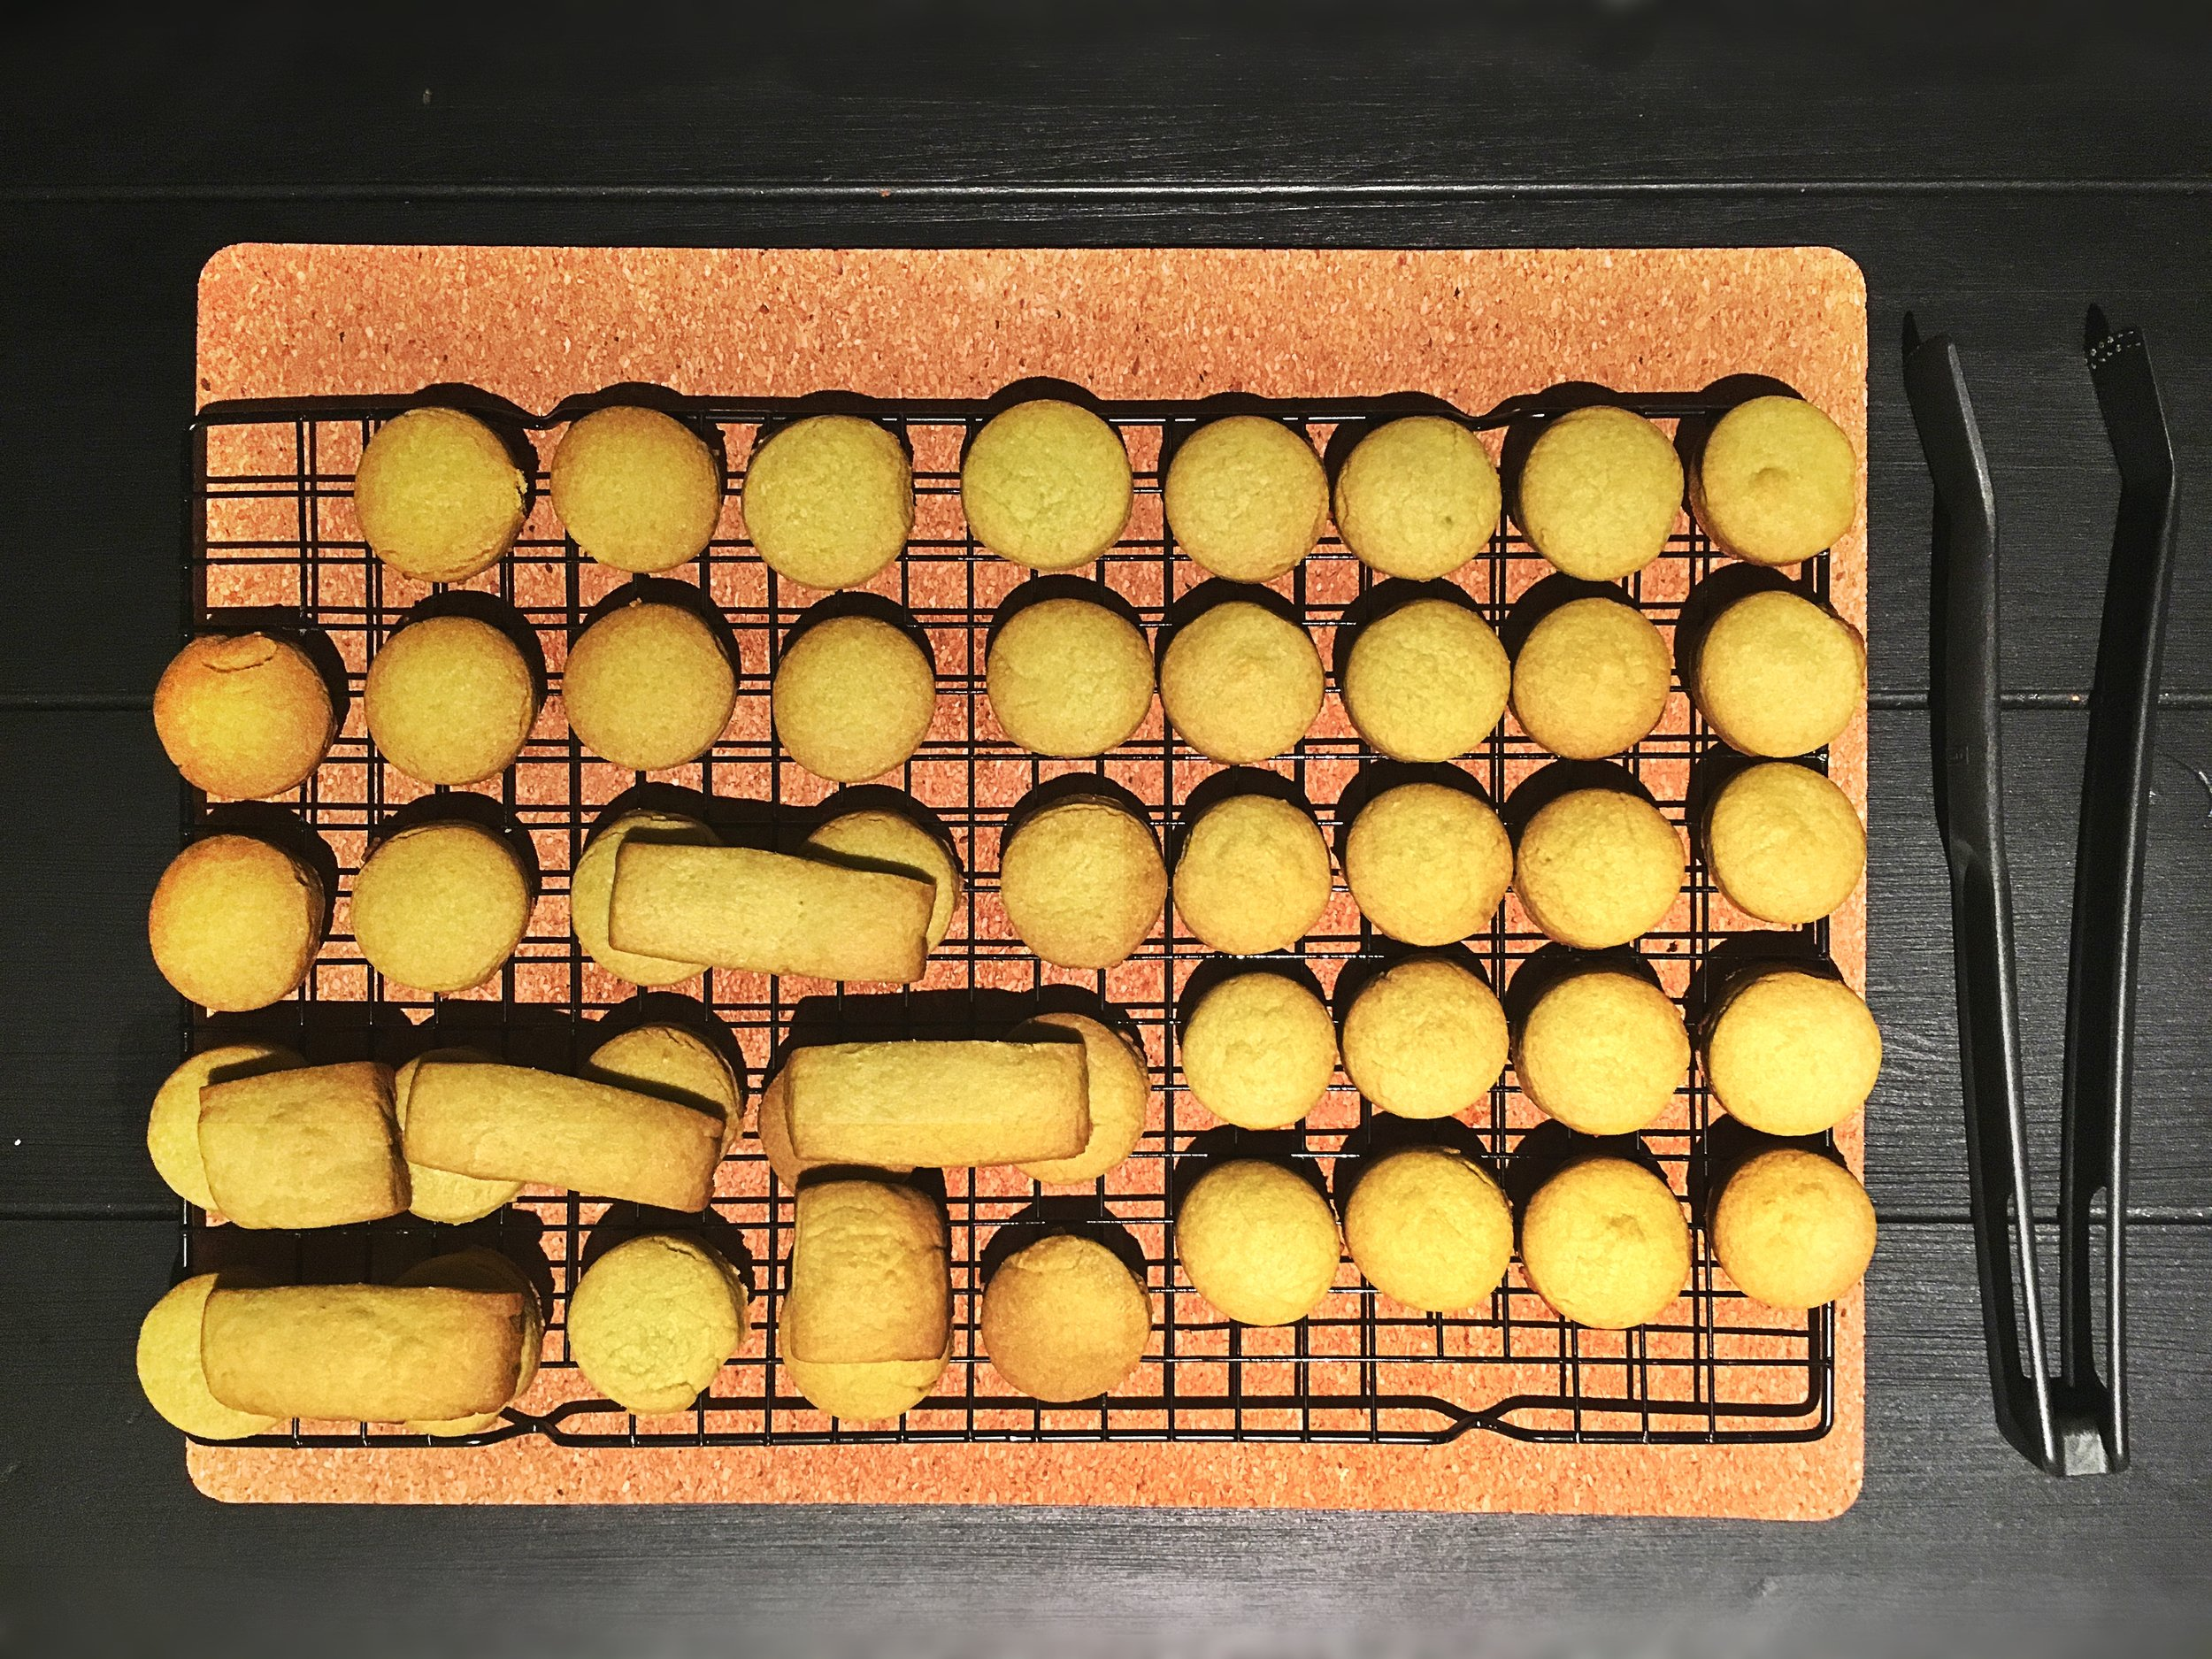 Makes about 50 cookies depending on how big you want them. These are about 1.5 inches which are the perfect size for tea time munchies. They are also very much a Chinese New Year favourite in Singapore!